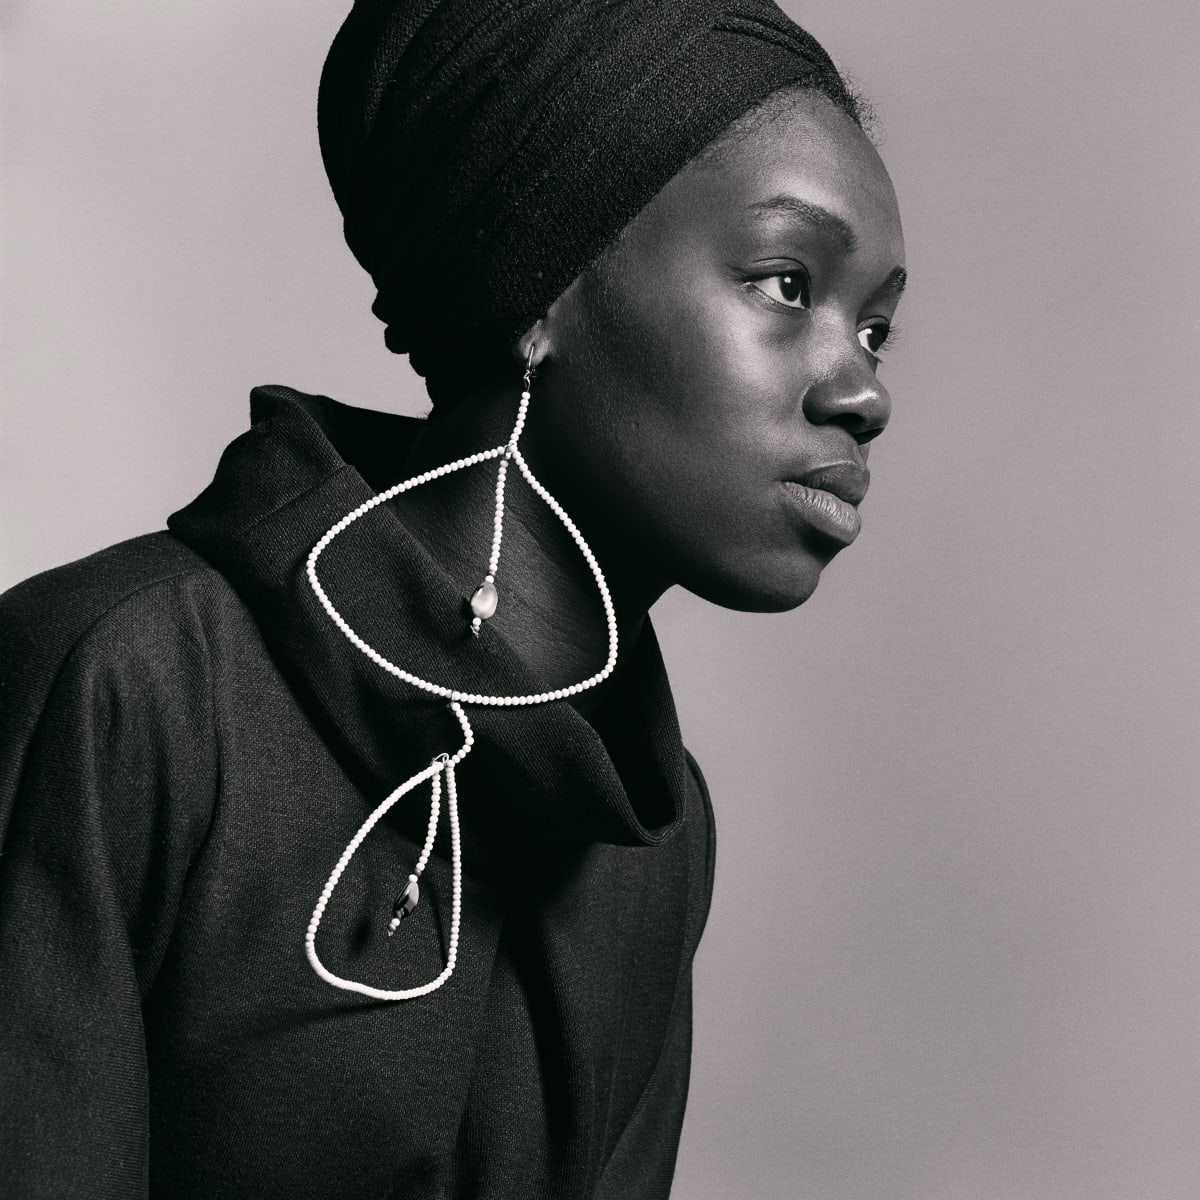 """Black Is Beautiful"": Identity, Pride and the Photography of Kwame Brathwaite"